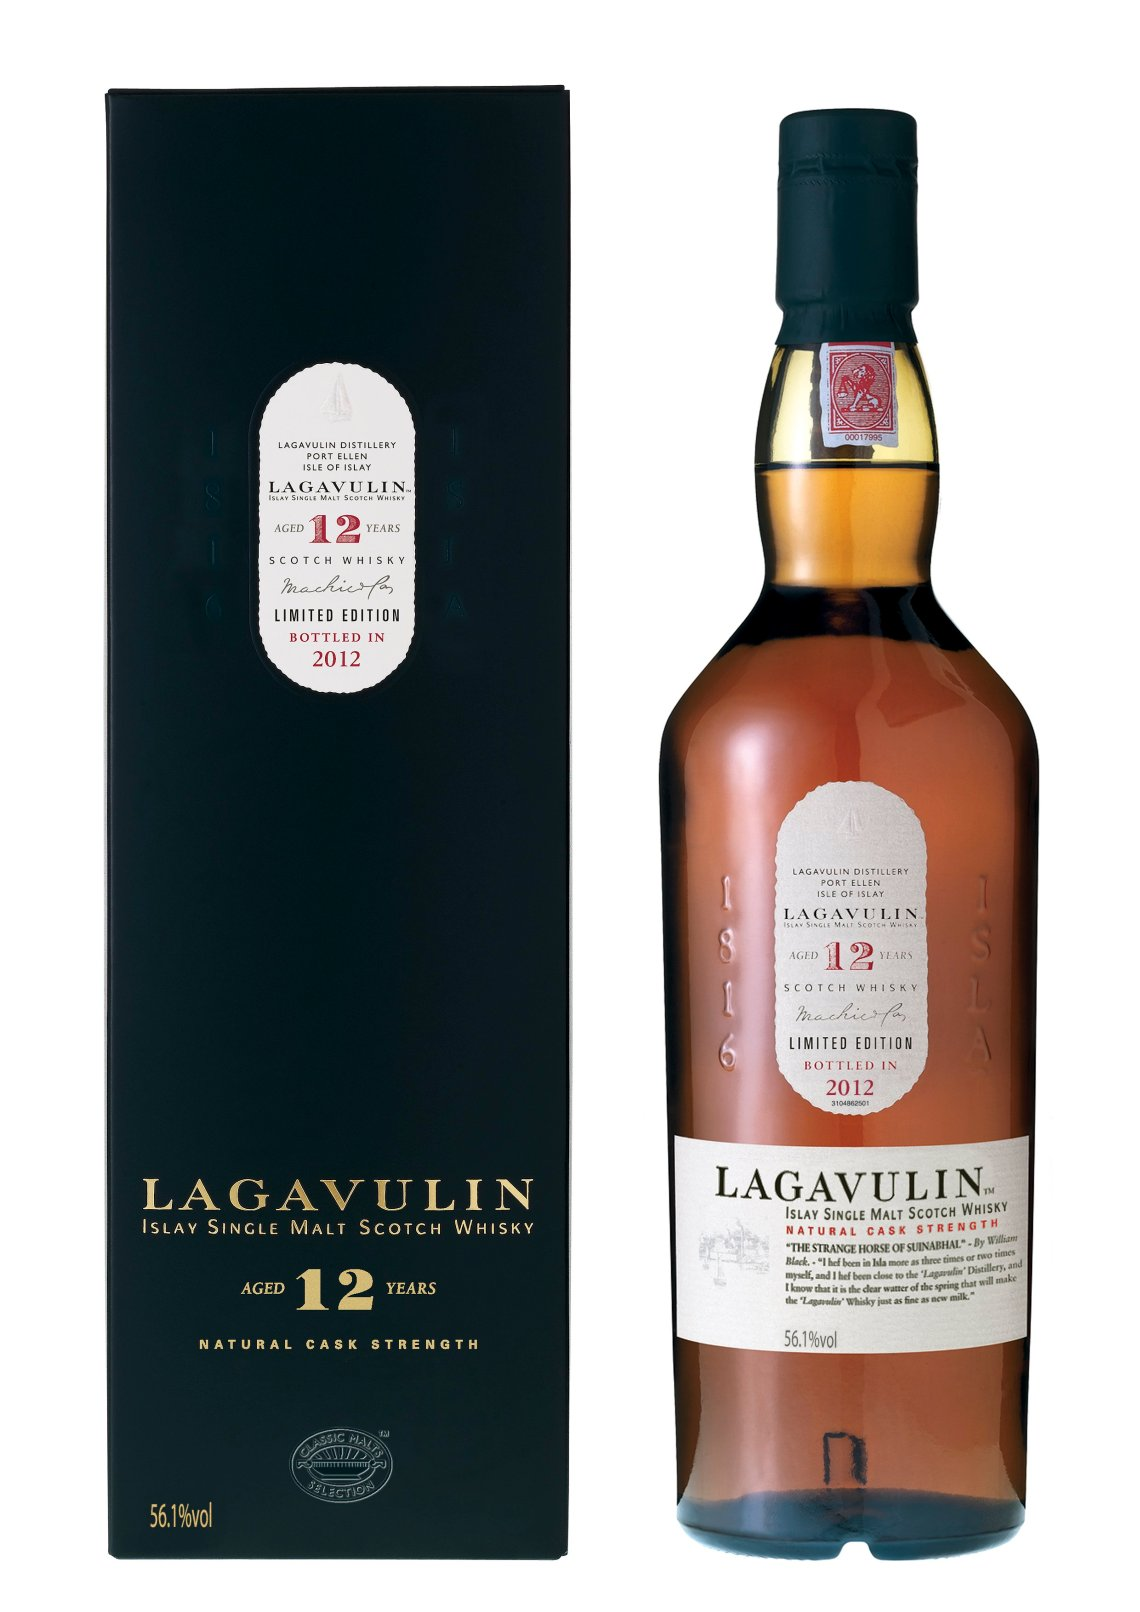 Lagavulin 12 Years Old Limited Edition 2012